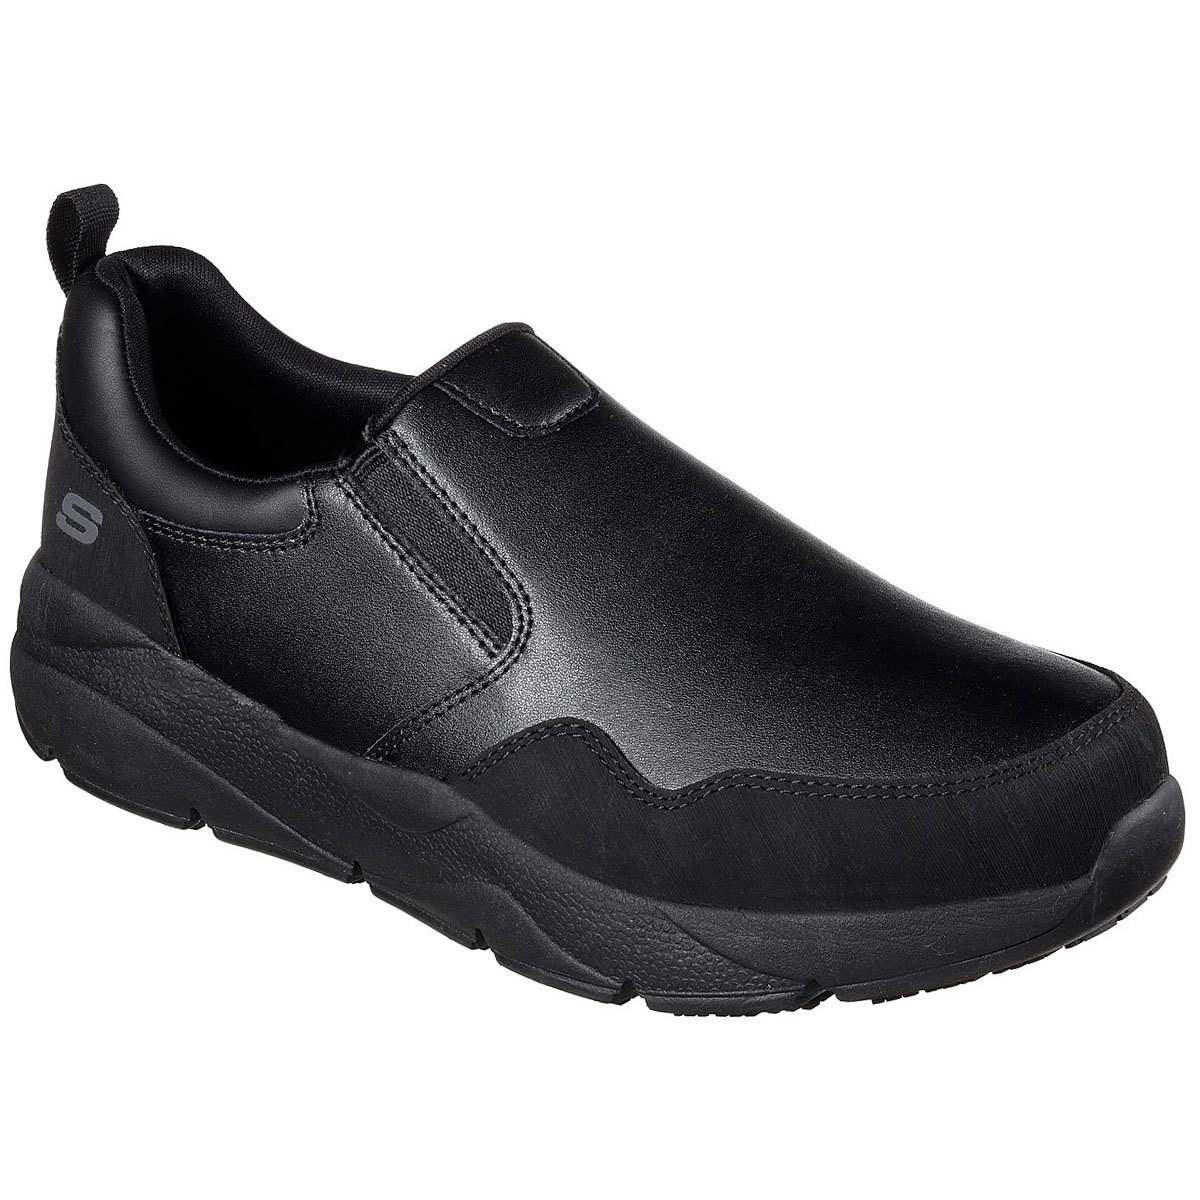 Skechers Men's Work: Resterly Sr Slip-On Work Shoes - Black, 10.5